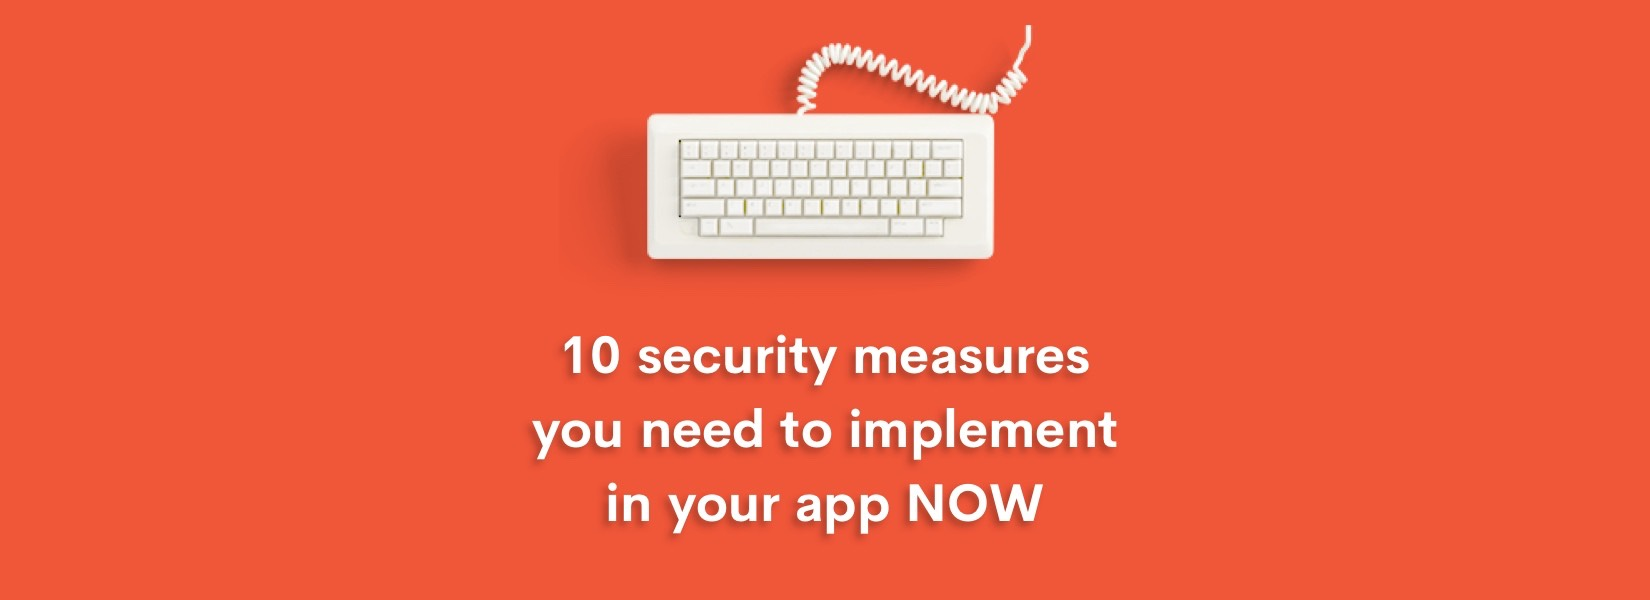 10 security measures you need to implement in your app NOW